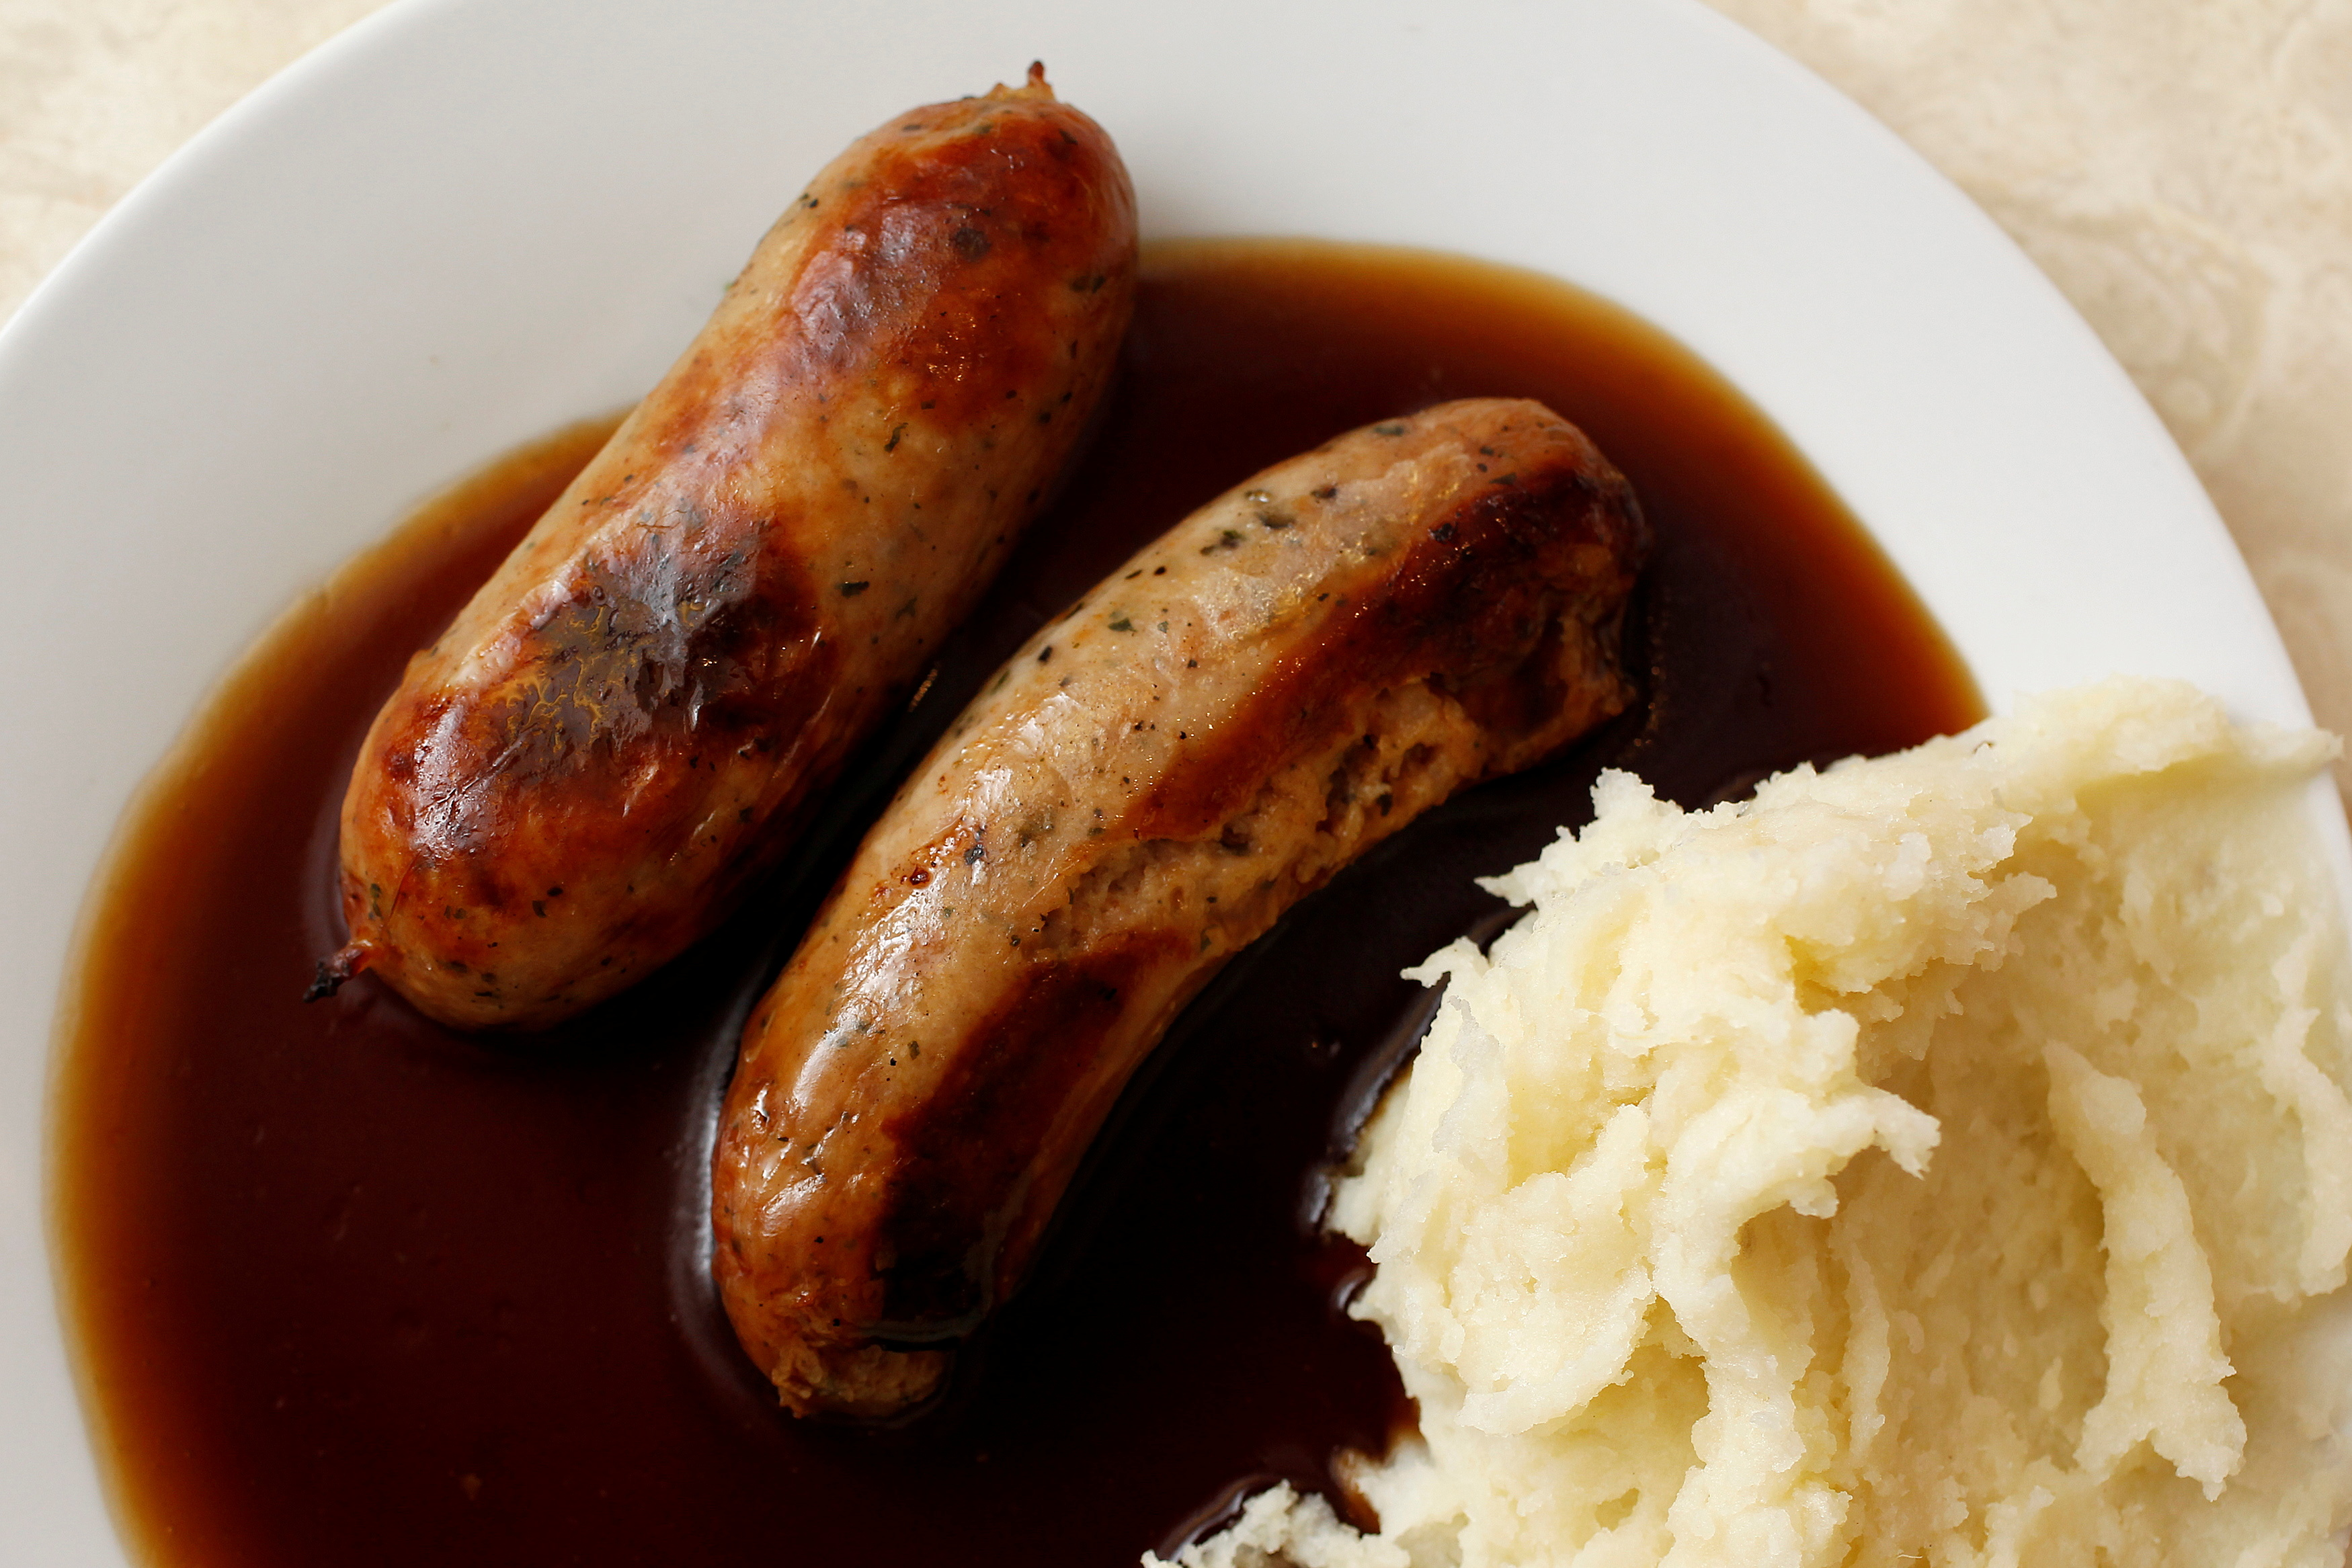 A traditional British meal of sausages and mashed potato in gravy, known as Bangers and Mash, is pictured in G. Kelly's pie and mash shop in east London June 1, 2012. REUTERS/Suzanne Plunkett/File Photo